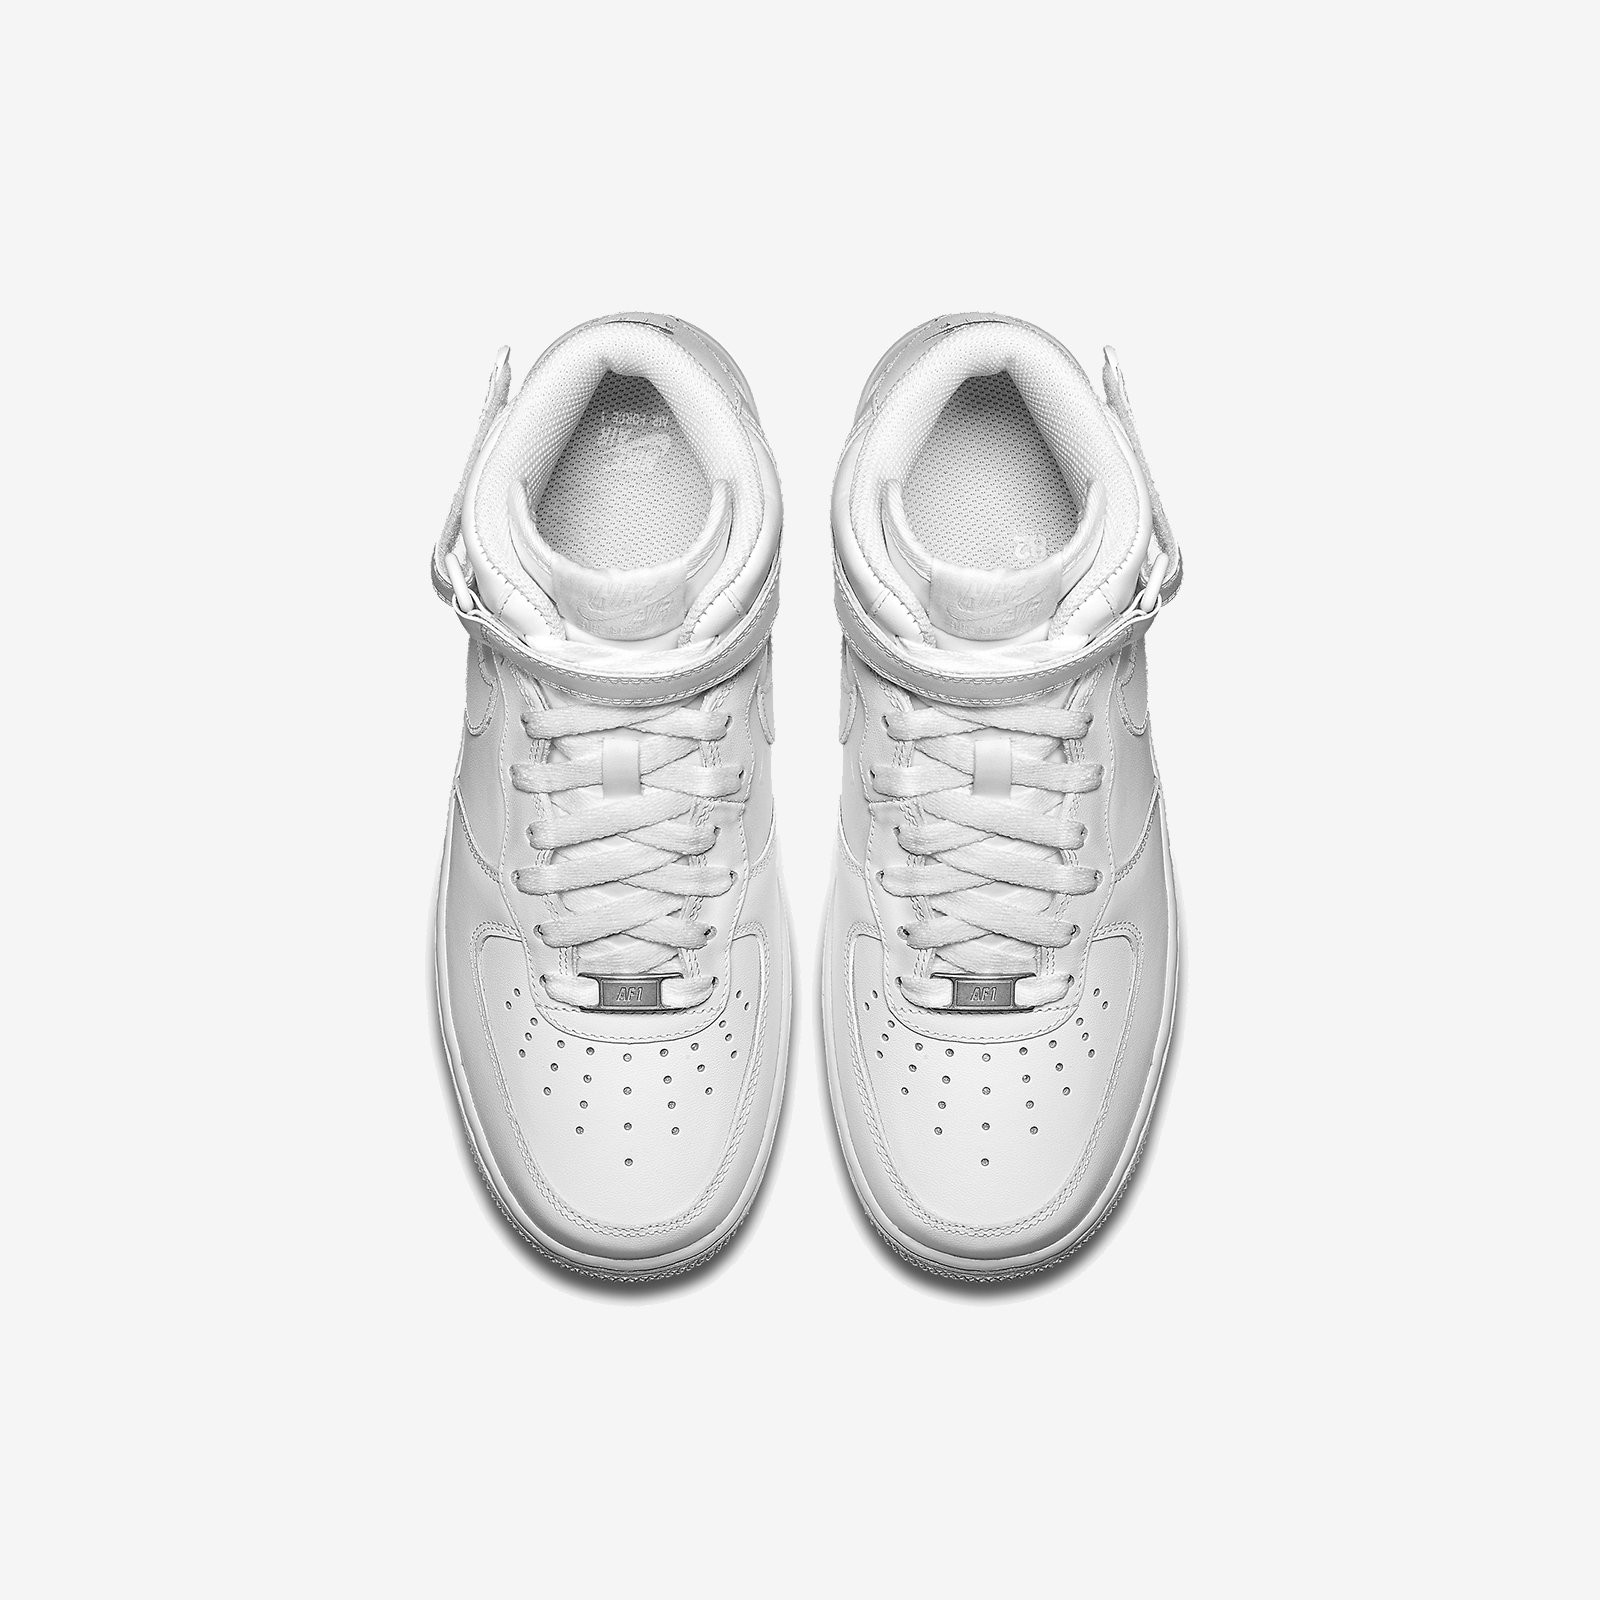 Women's Air Force 1 Mid '07 Leather White 366731 100